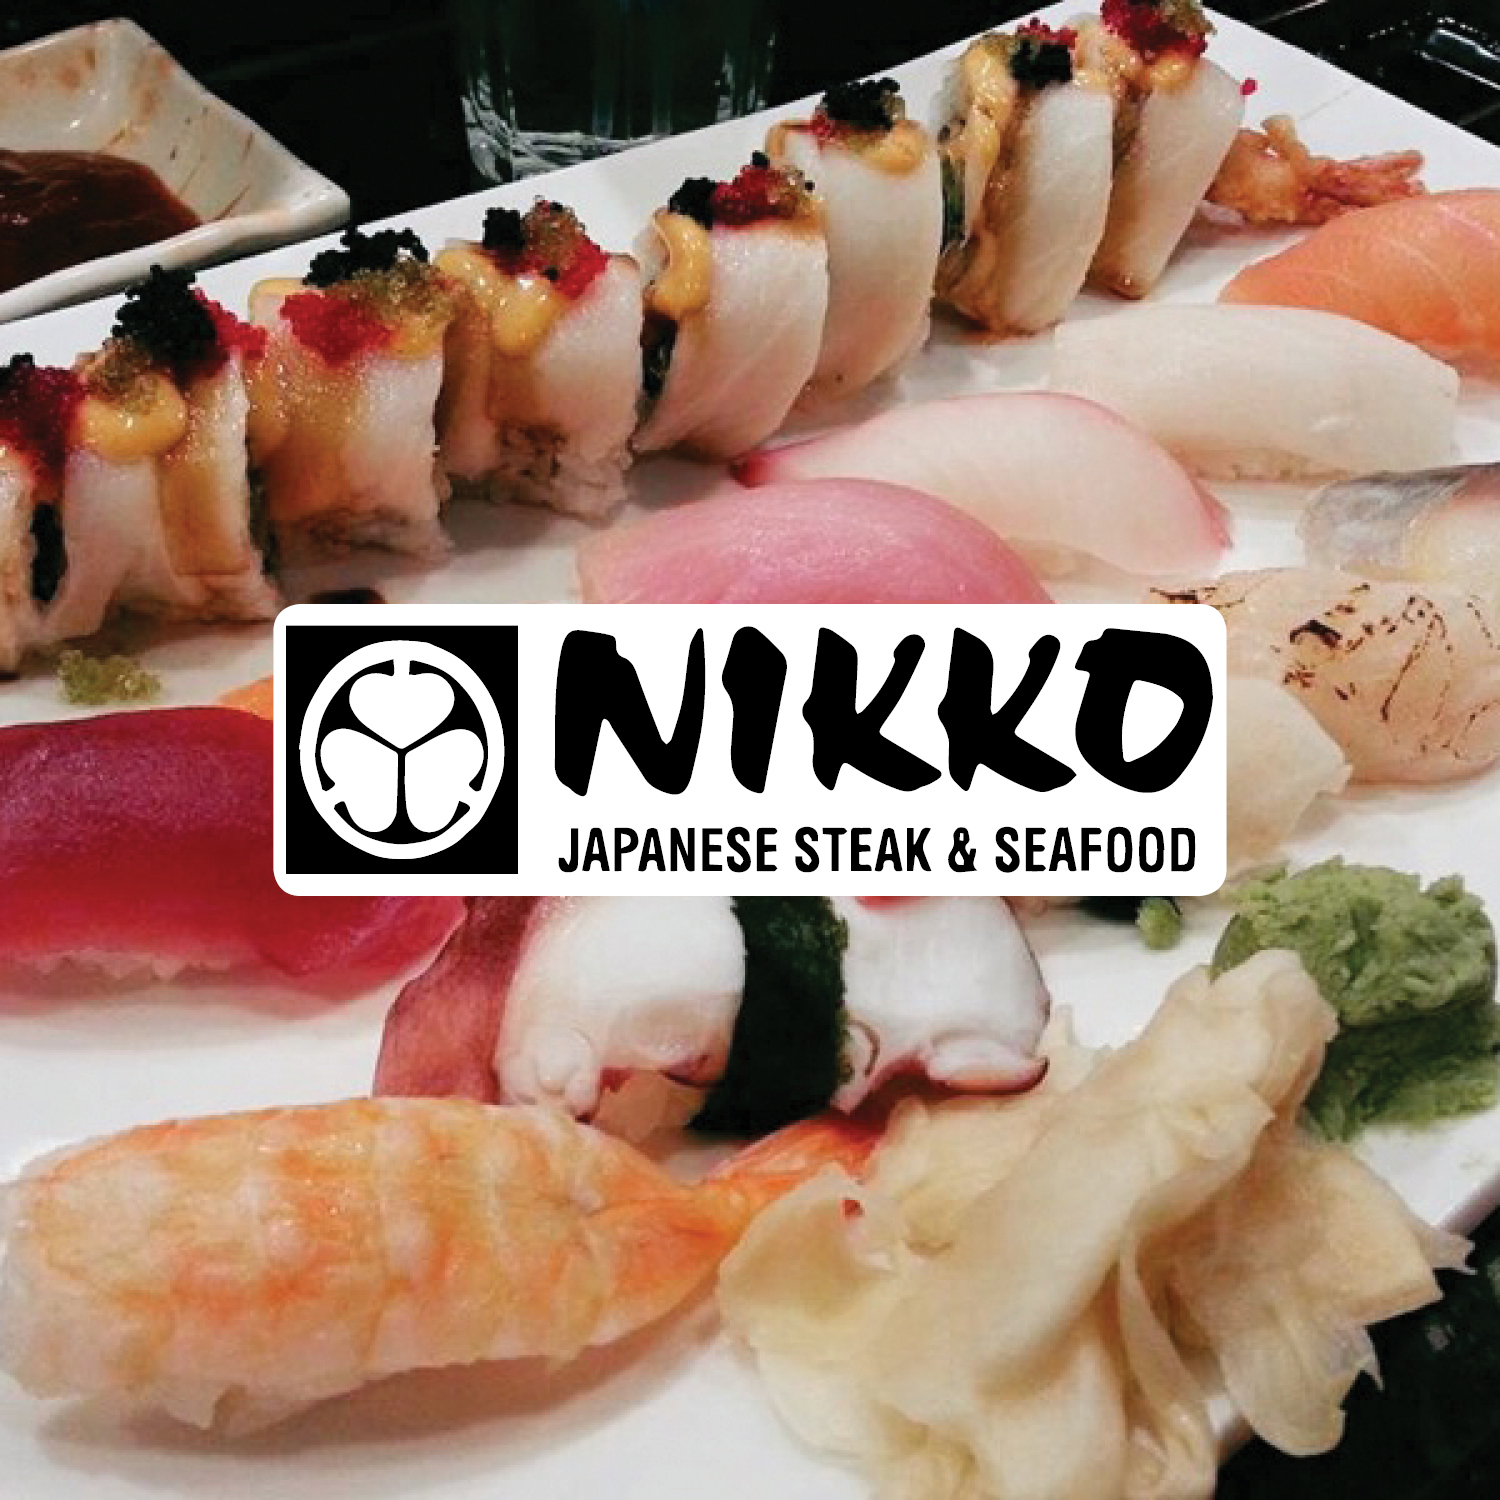 Welcome to Nikkos Japanese Steak & Seafood! Experience a dining experience like no other when you come to our restaurant. We offer a wide selection of sushi and a hibachi grill where your food is cooked and prepared right at your table! Join us for lunch or dinner tonight!    -Click image to view current offers-